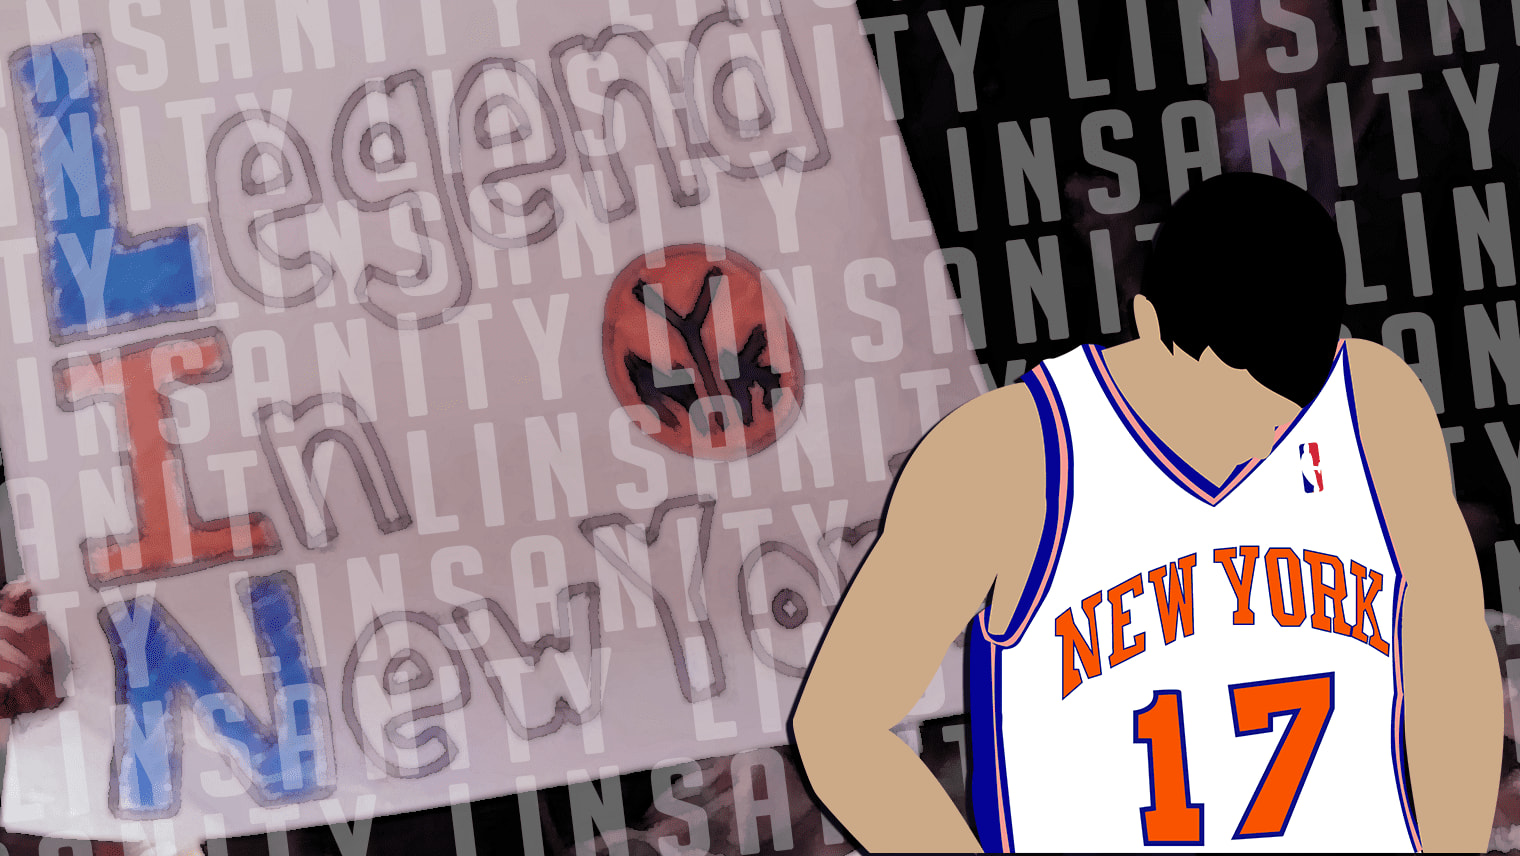 In February 2012, Linsanity took over not just the basketball world, but the entire sports world as Jeremy Lin took America by storm.